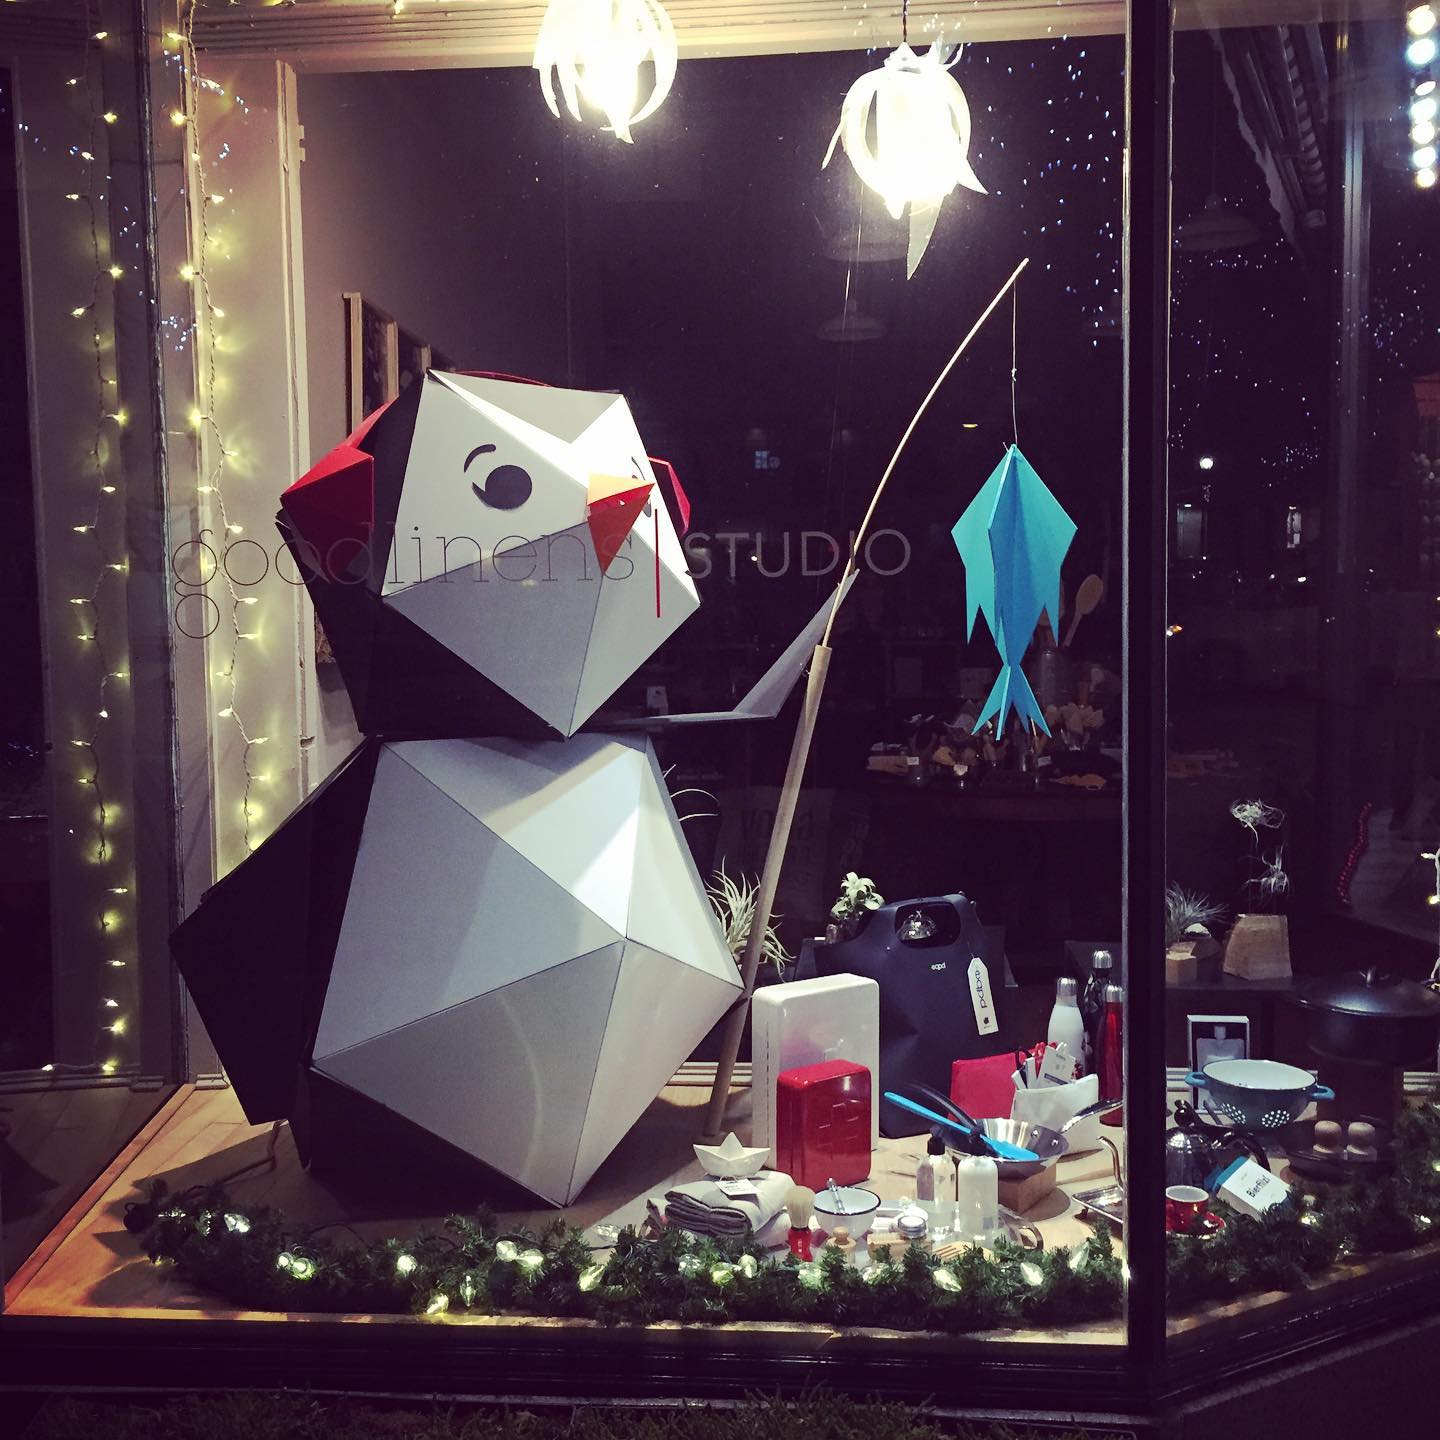 goodlinens studio window display in the Downtown Gloucester Holiday Window Contest